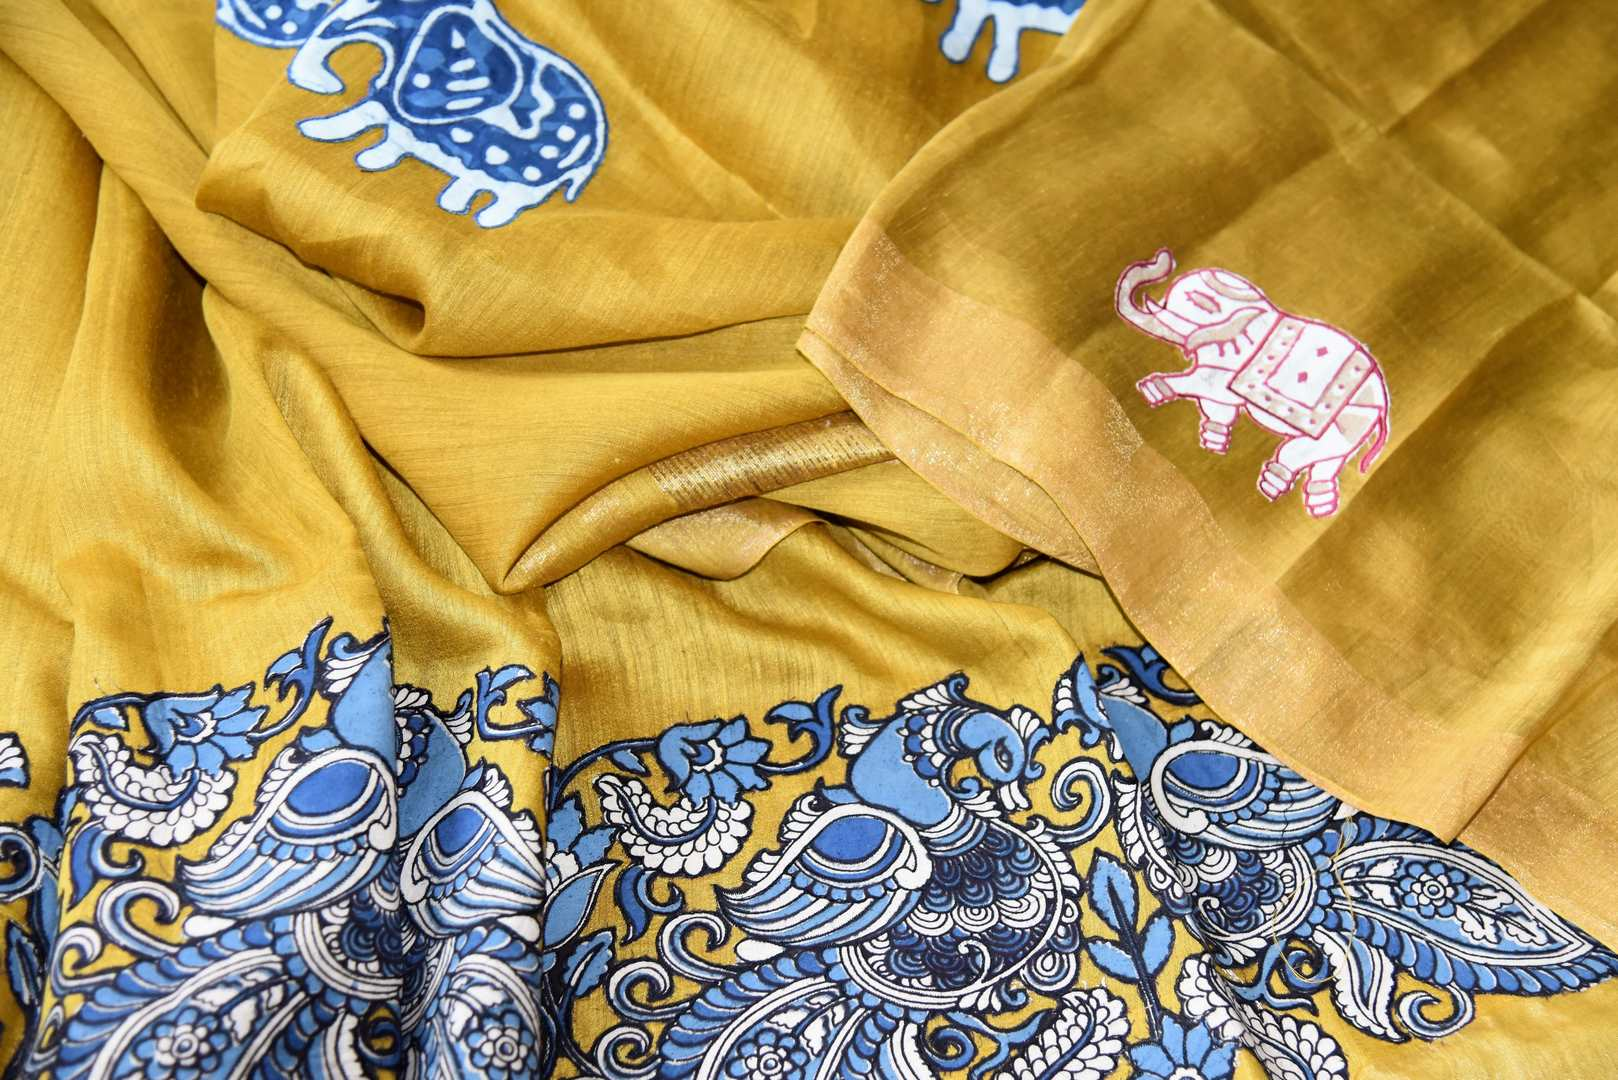 Mustard yellow tussar silk saree for online shopping in USA with Kalamkari applique work. Beautifully designed woven sari is a graceful choice for special occasions. Shop Indian handloom sarees, silk saris in USA from an alluring collection available at Pure Elegance fashion store.-details